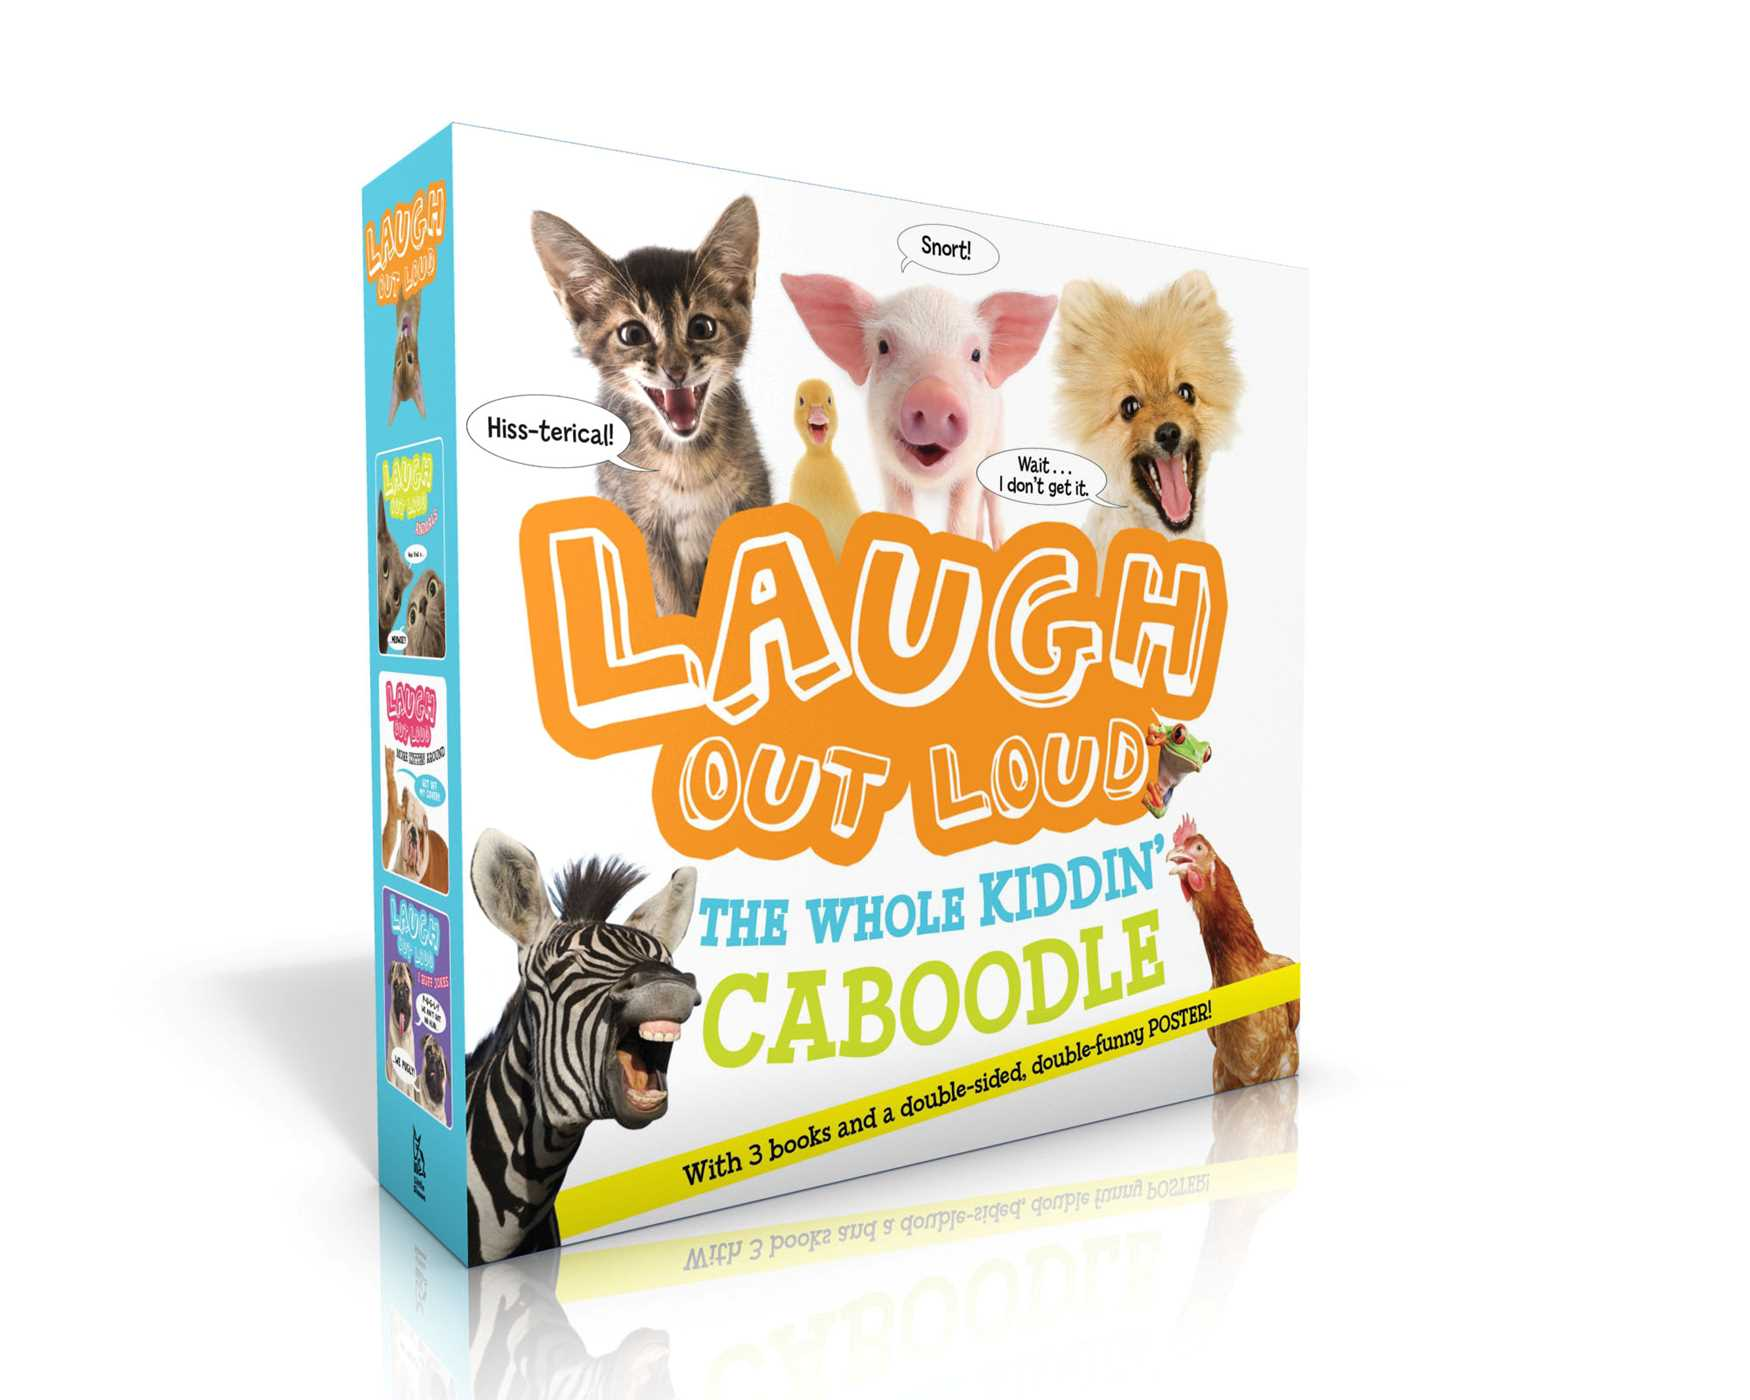 Laugh out loud the whole kiddin caboodle with 3 books and a double sided double funny poster 9781534401877 hr